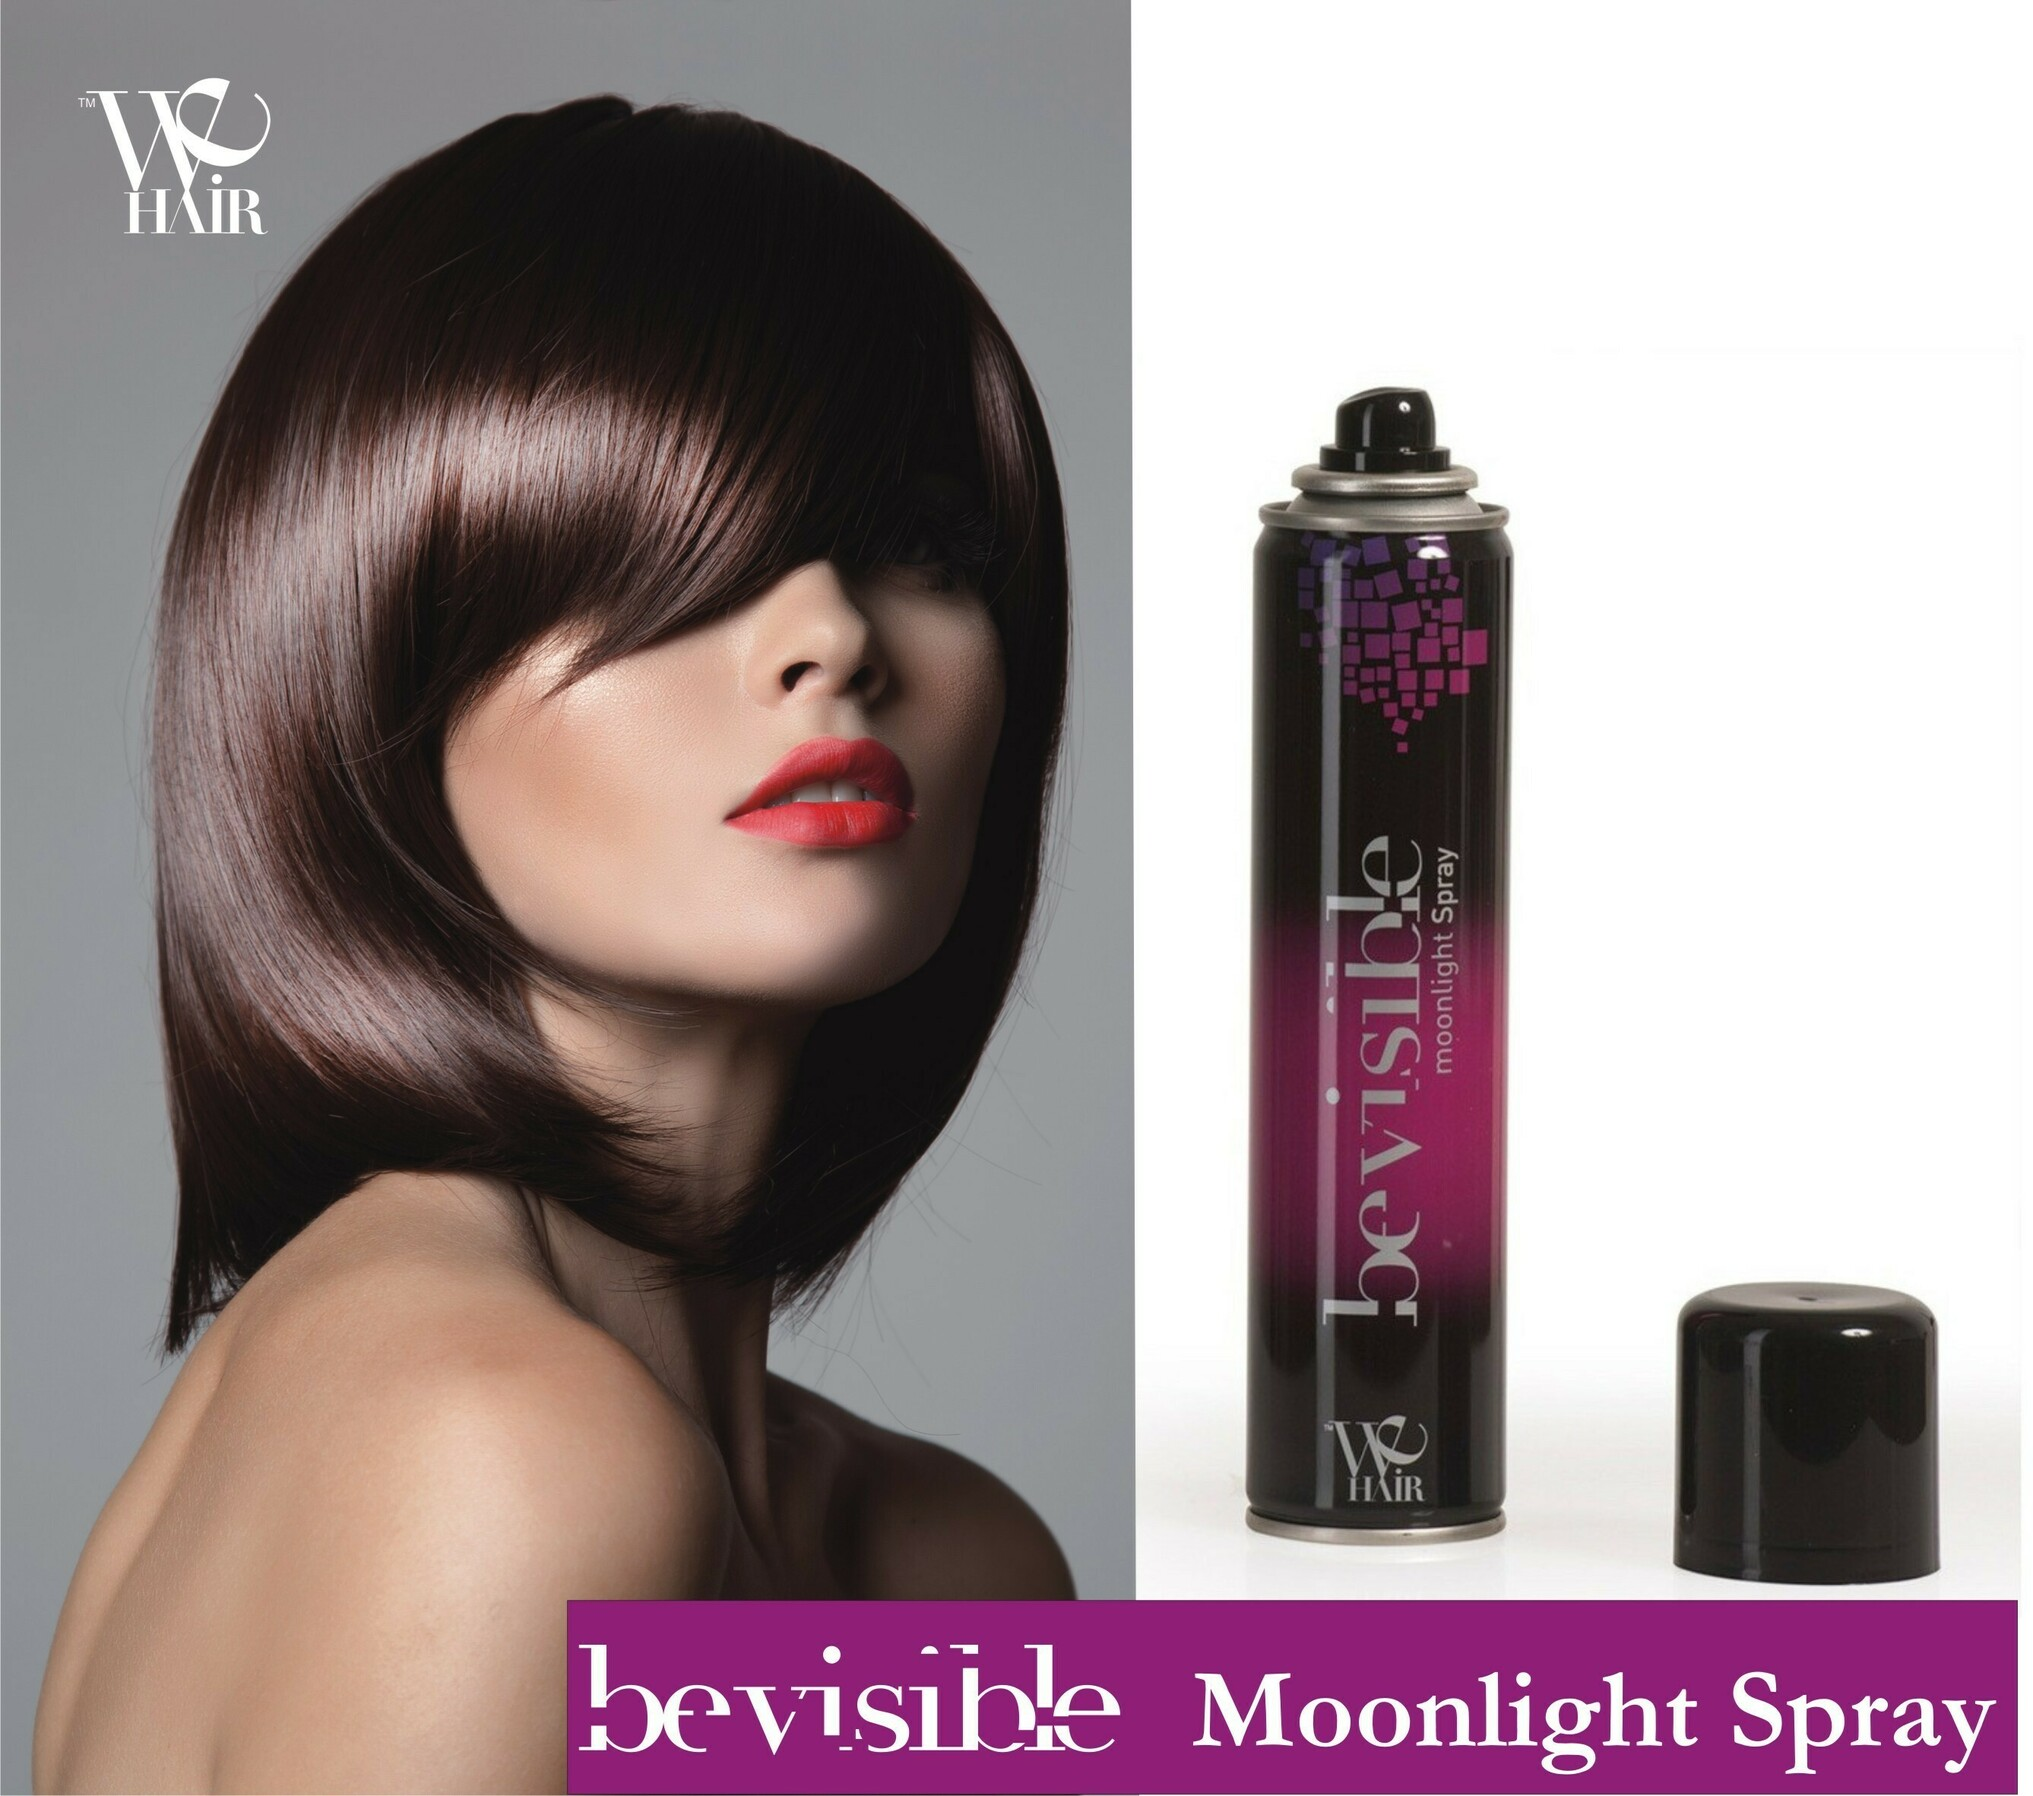 Bevisible Moonlight Spray